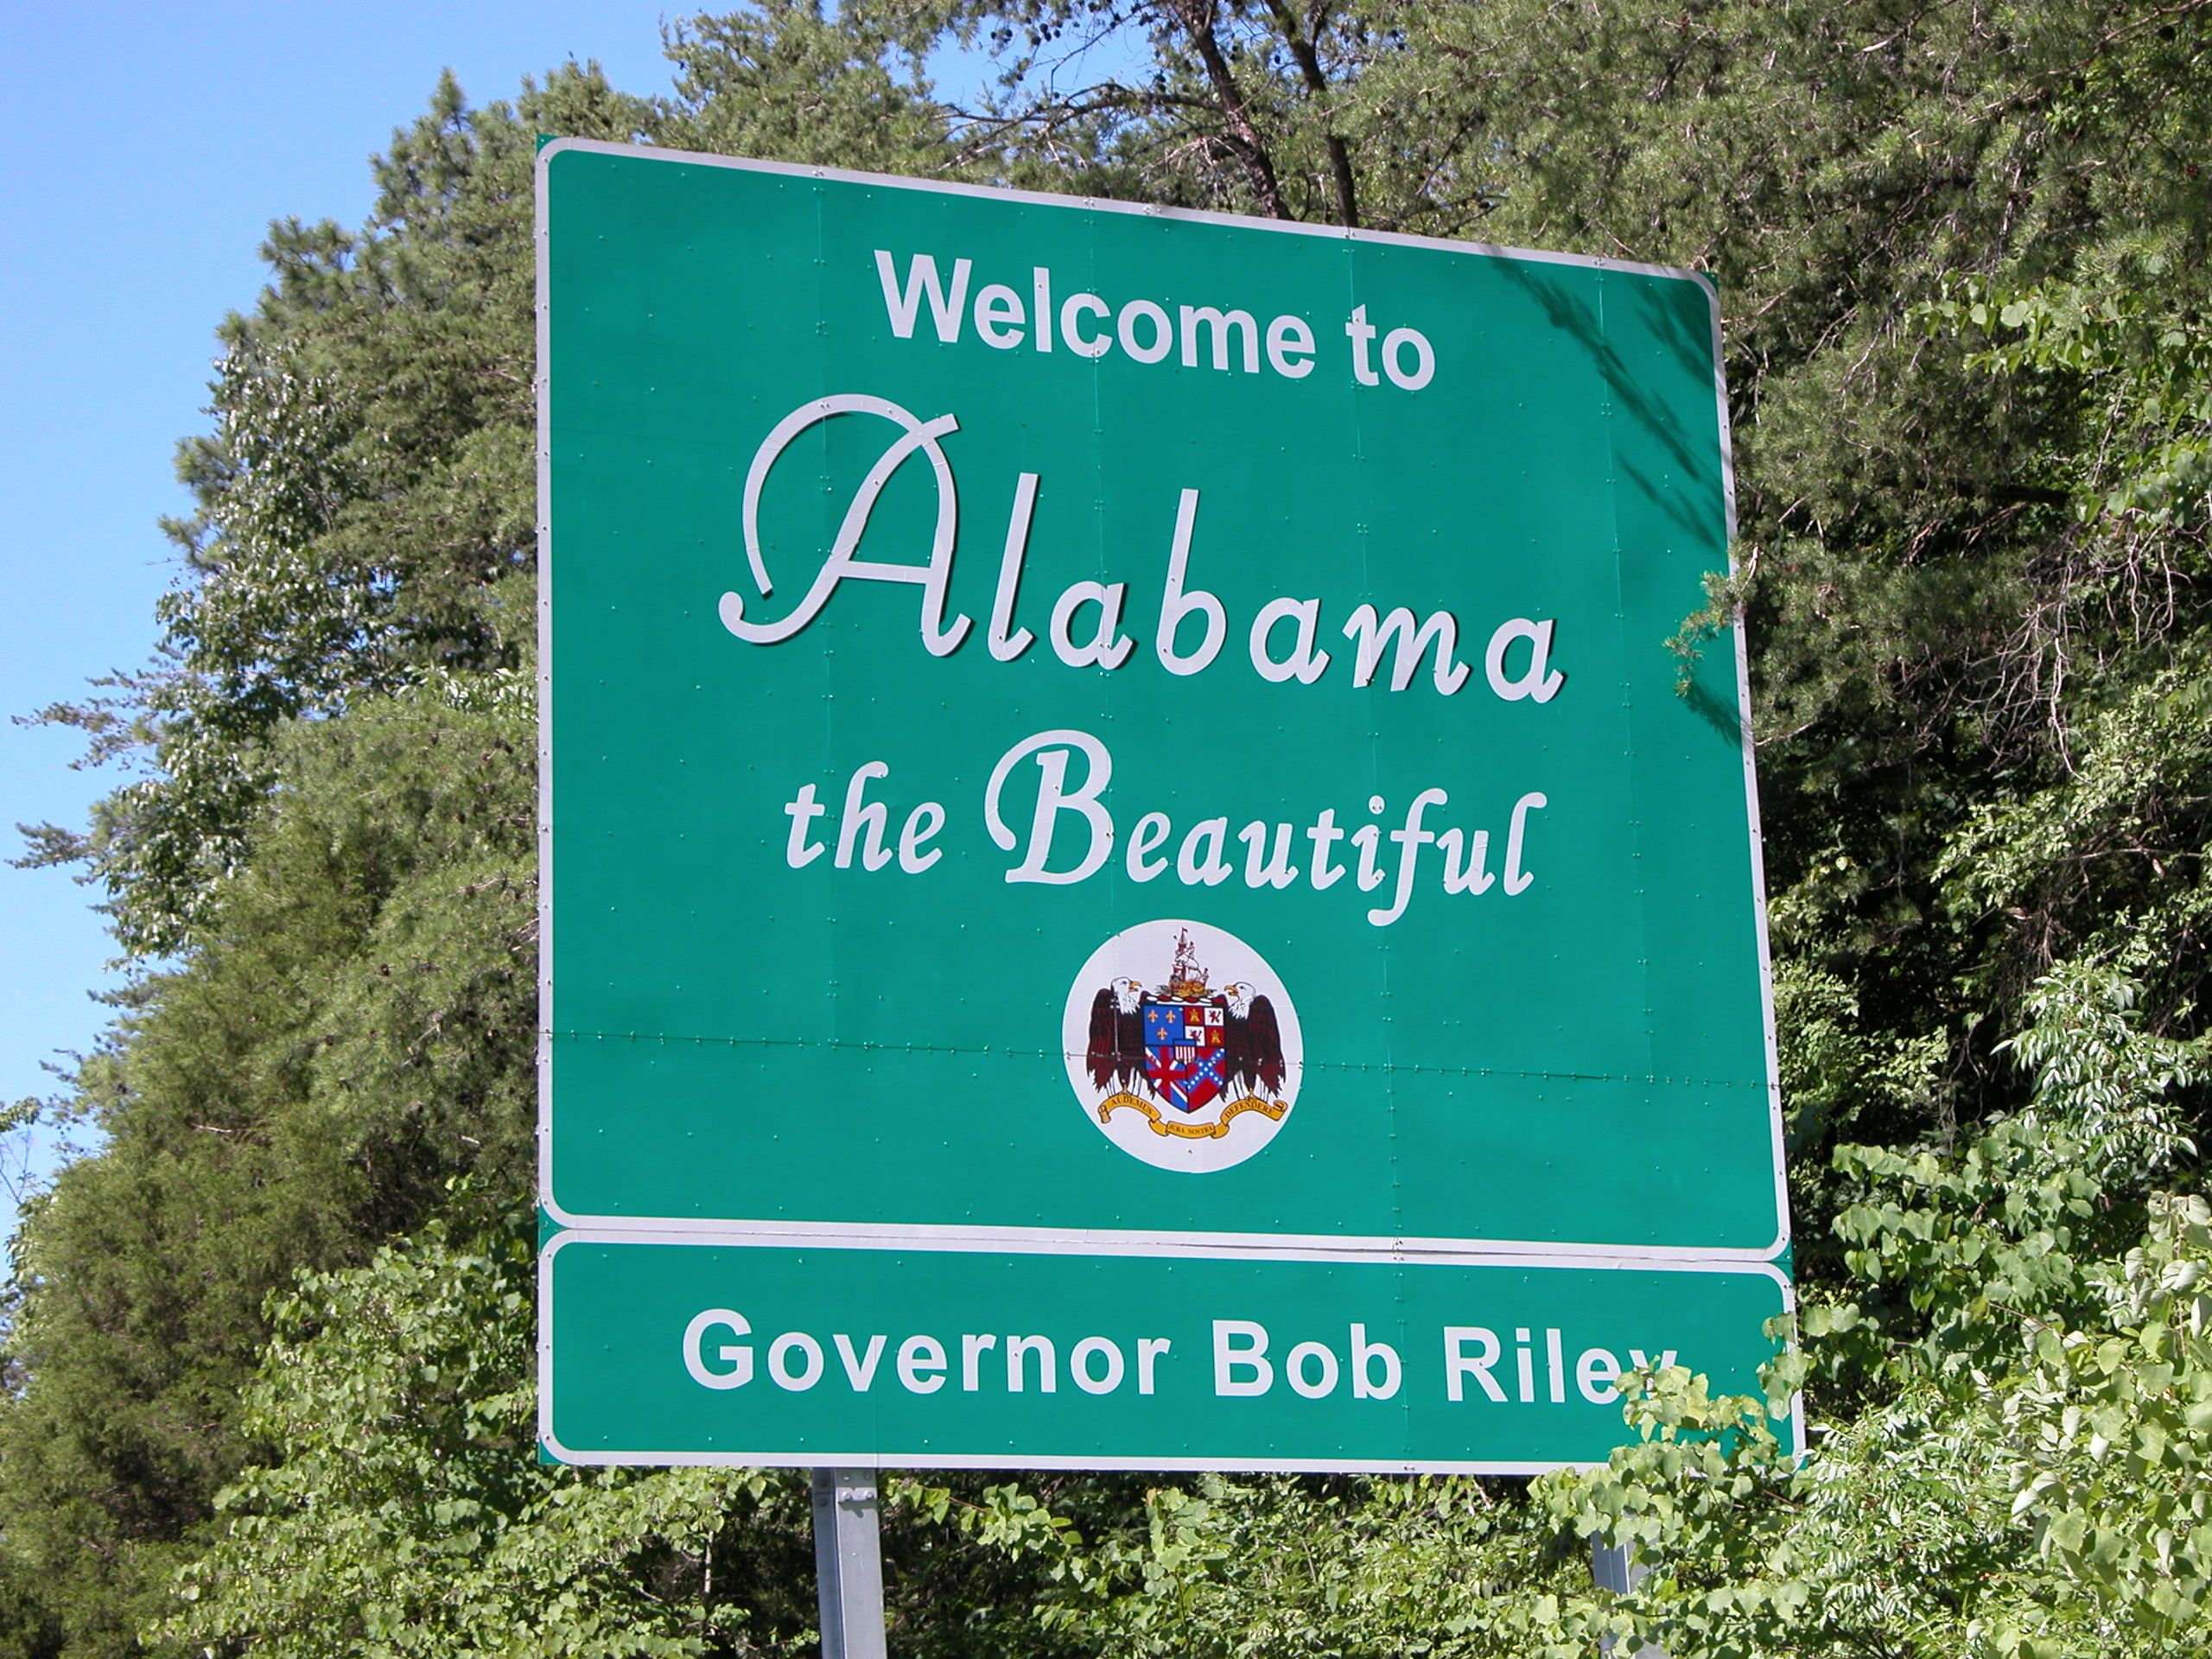 Sweet Home Alabama - I never get tired of going home!